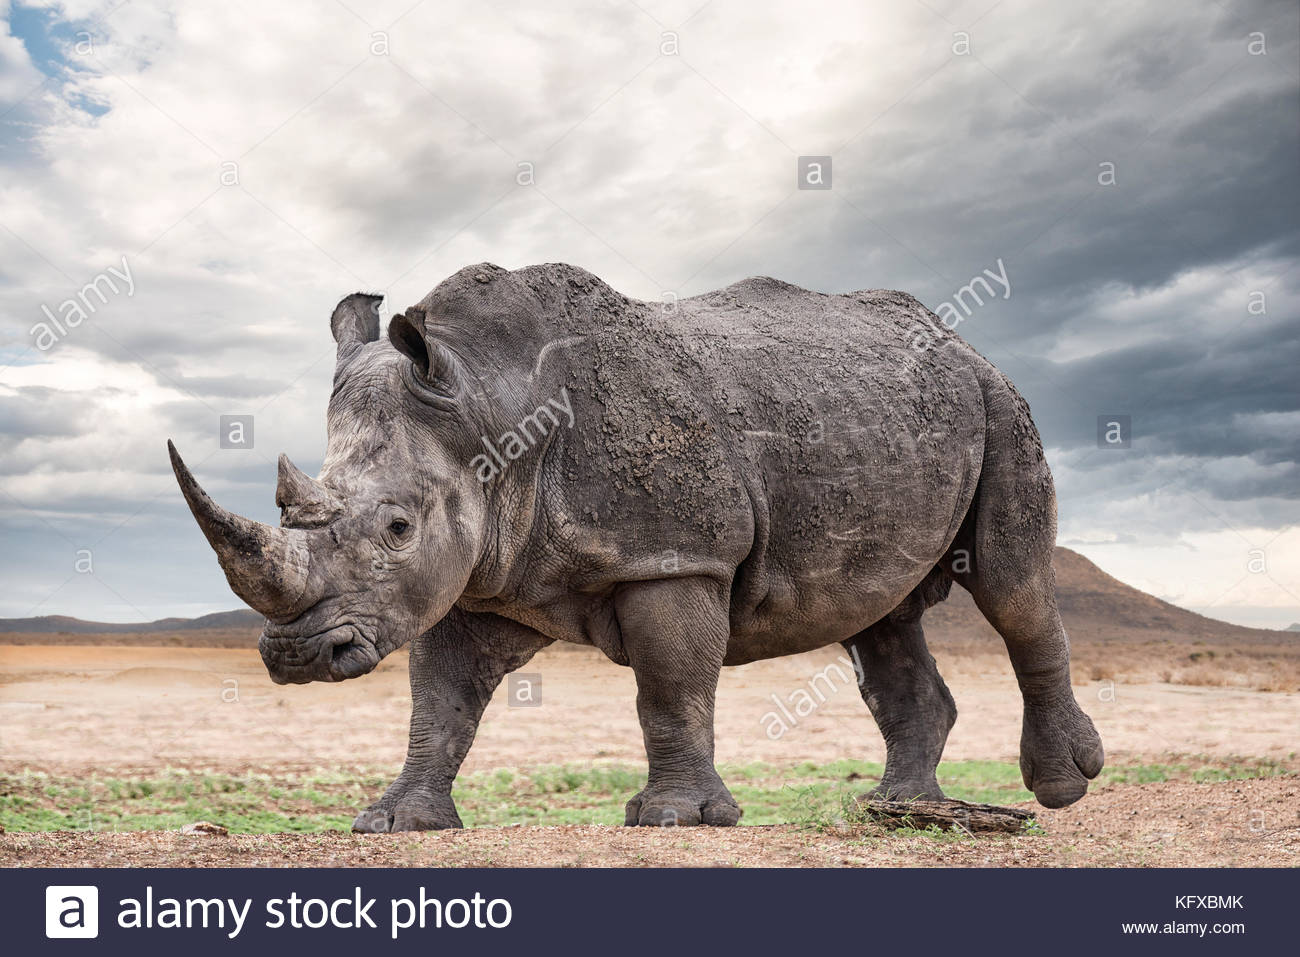 A white rhinoceros, Madikwe Game Reserve - Stock Image